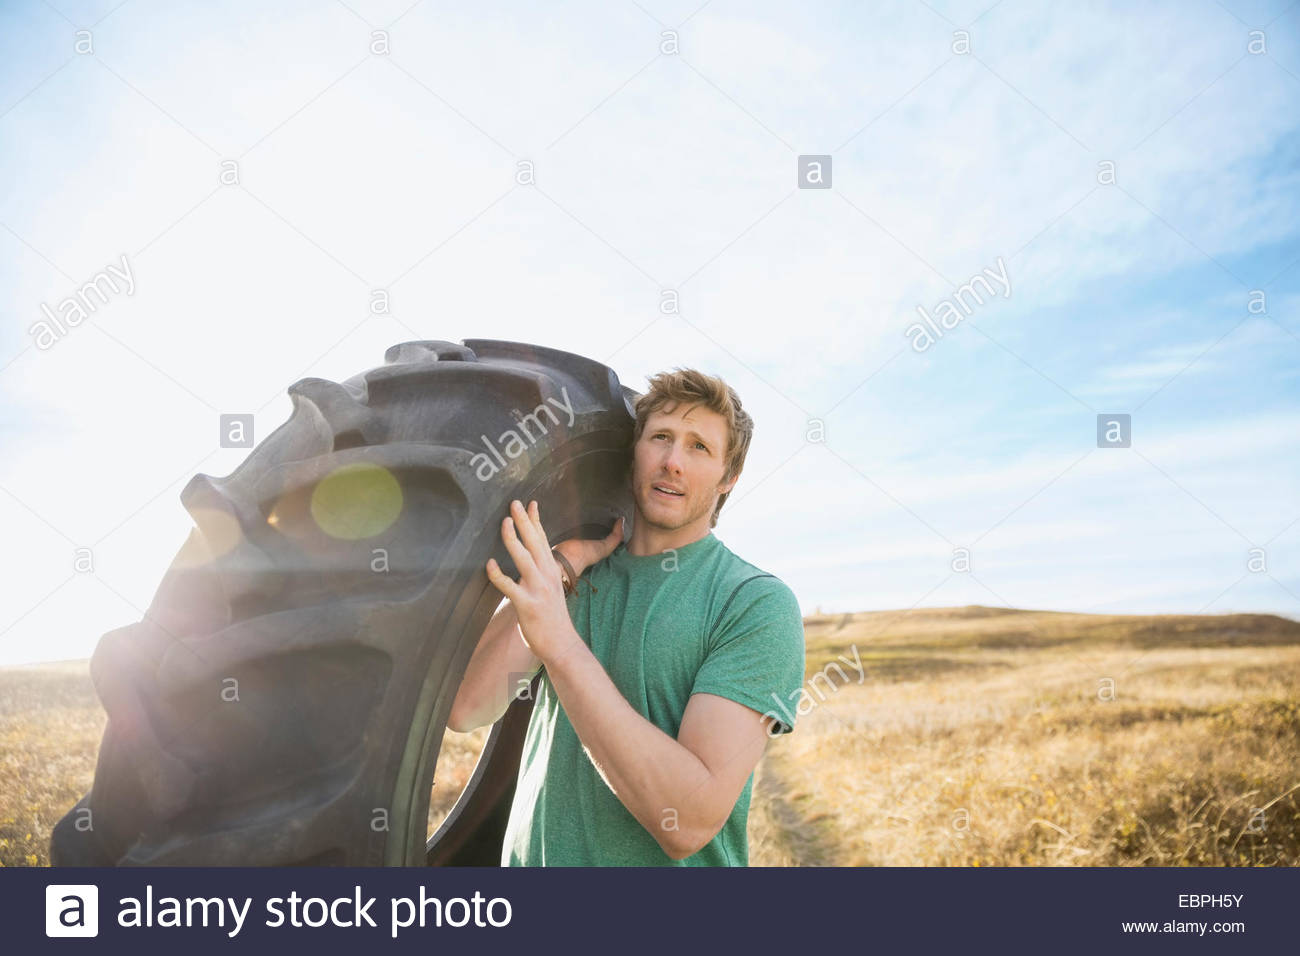 Homme portant des pneus crossfit dans sunny rural field Photo Stock